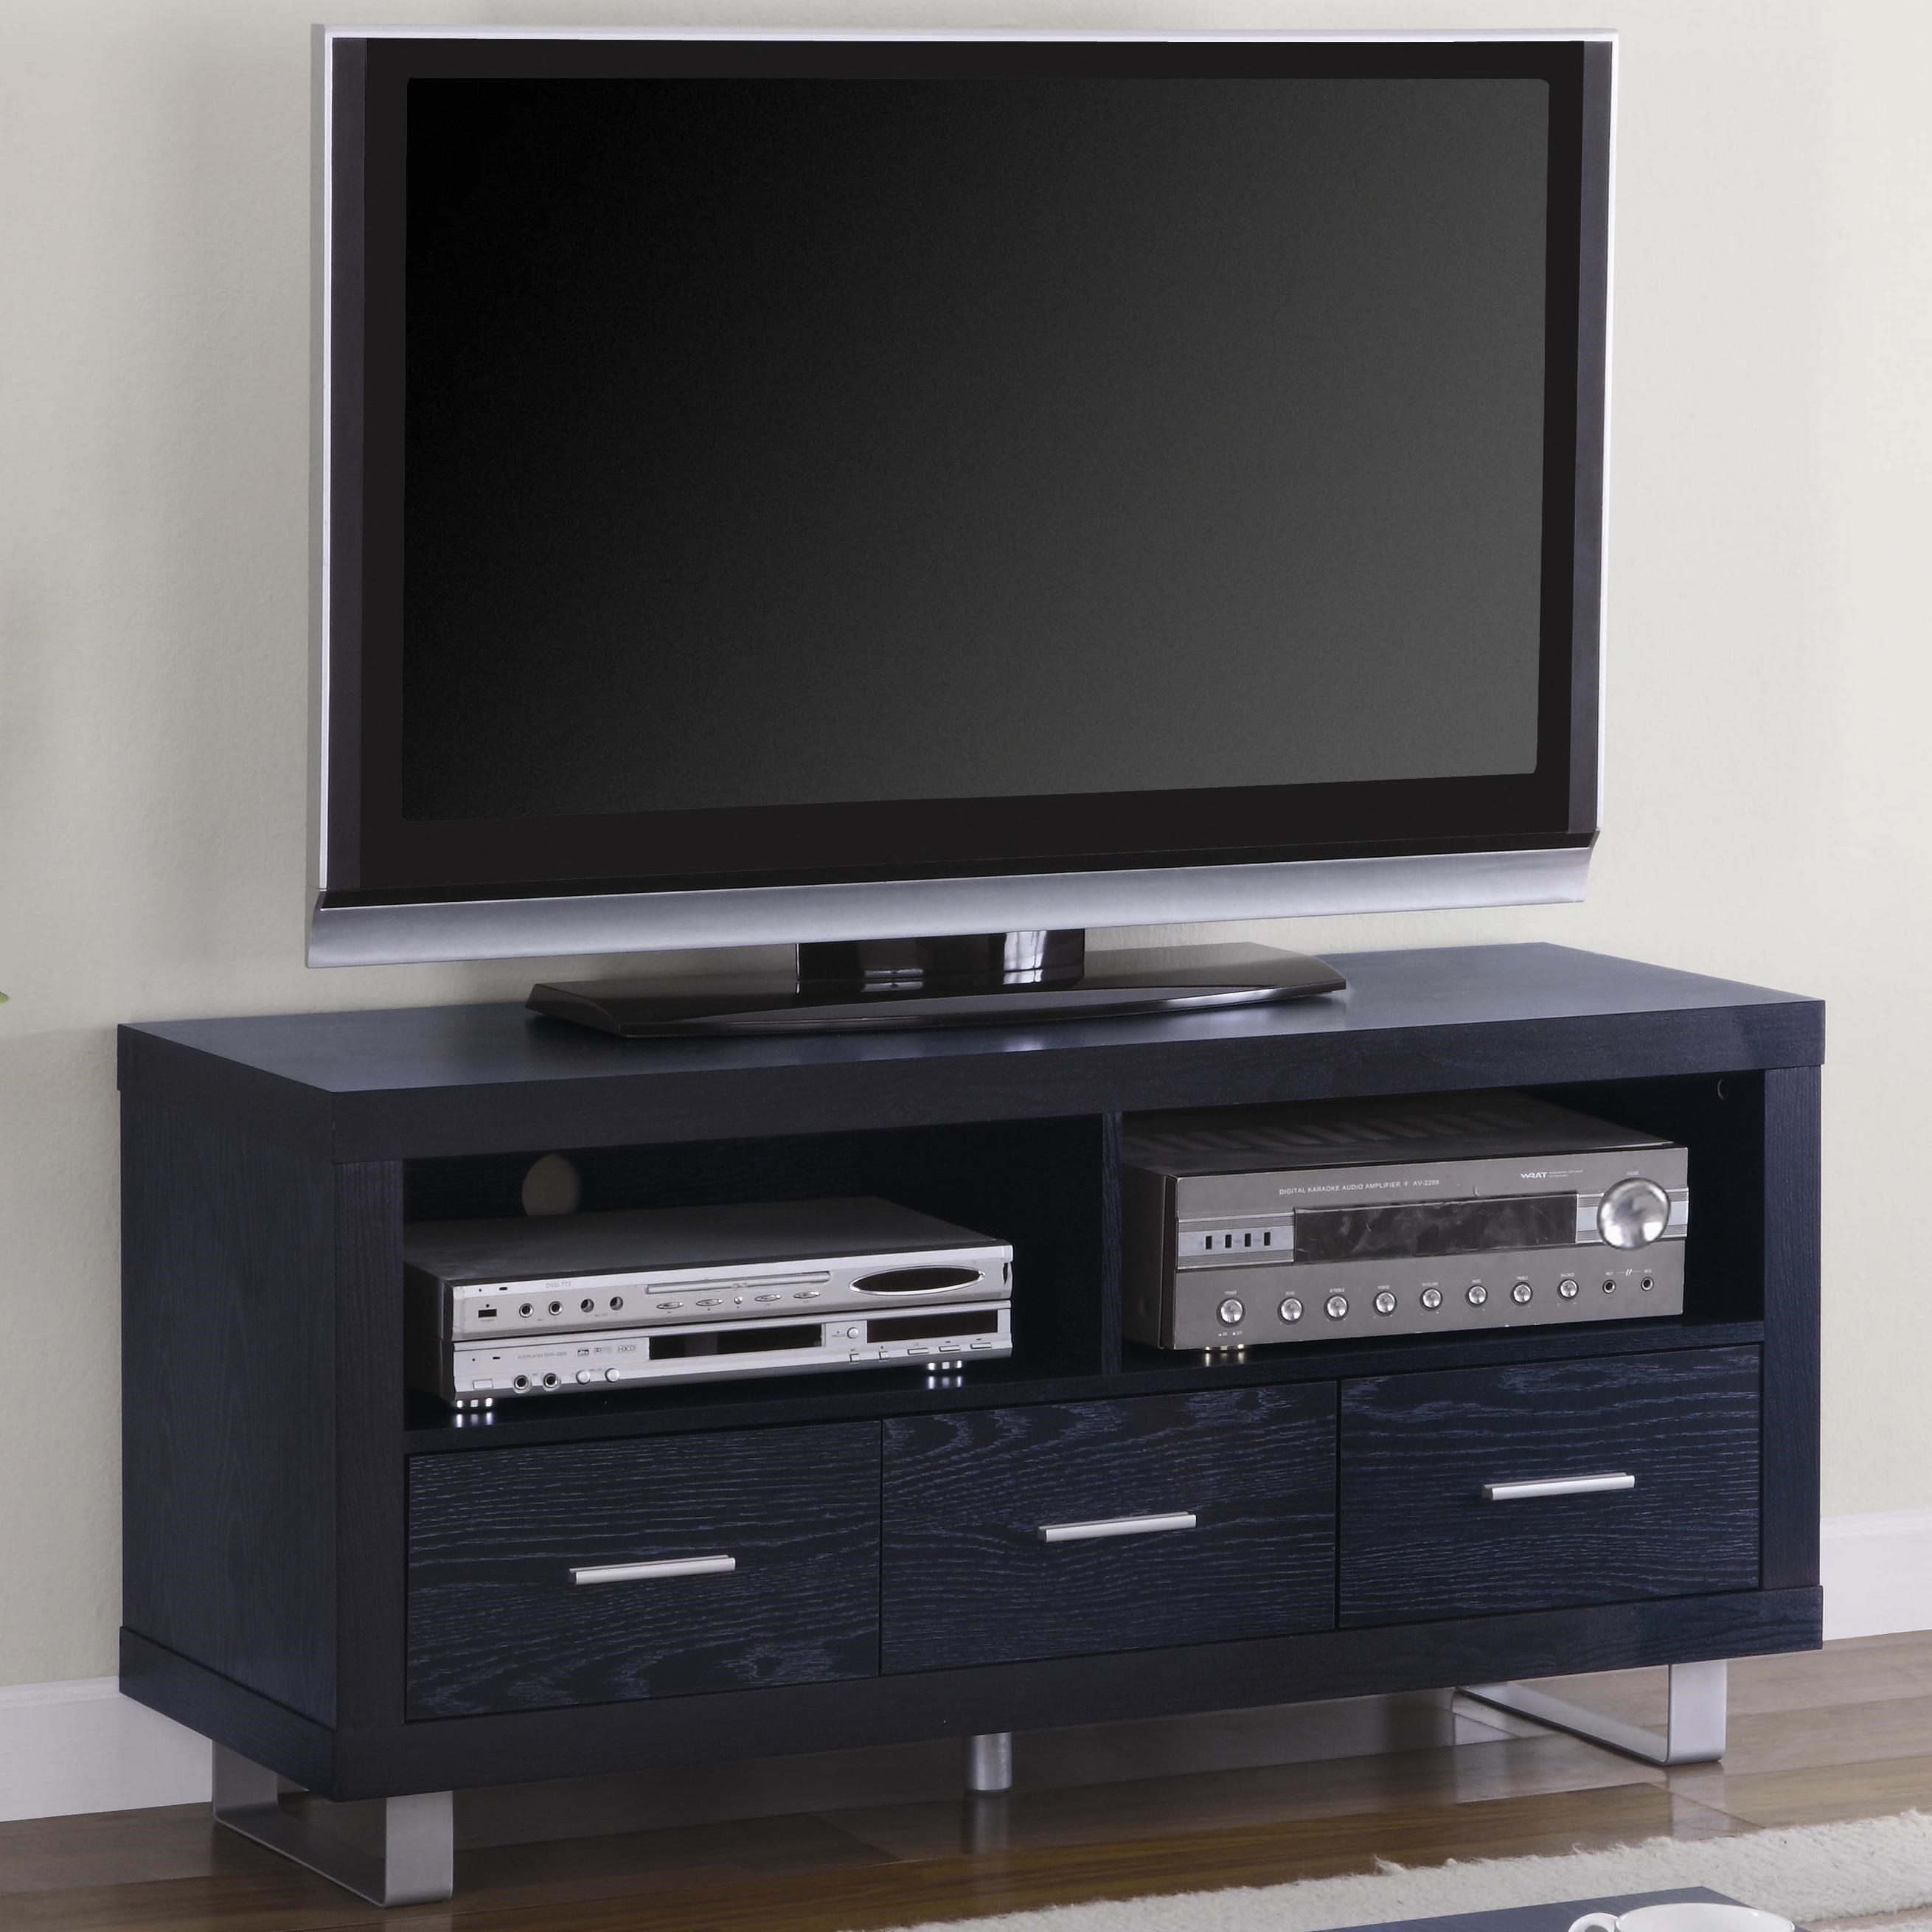 contemporary media console furniture. TV Stands Contemporary Media Console With Shelves And Drawers By Coaster Furniture .